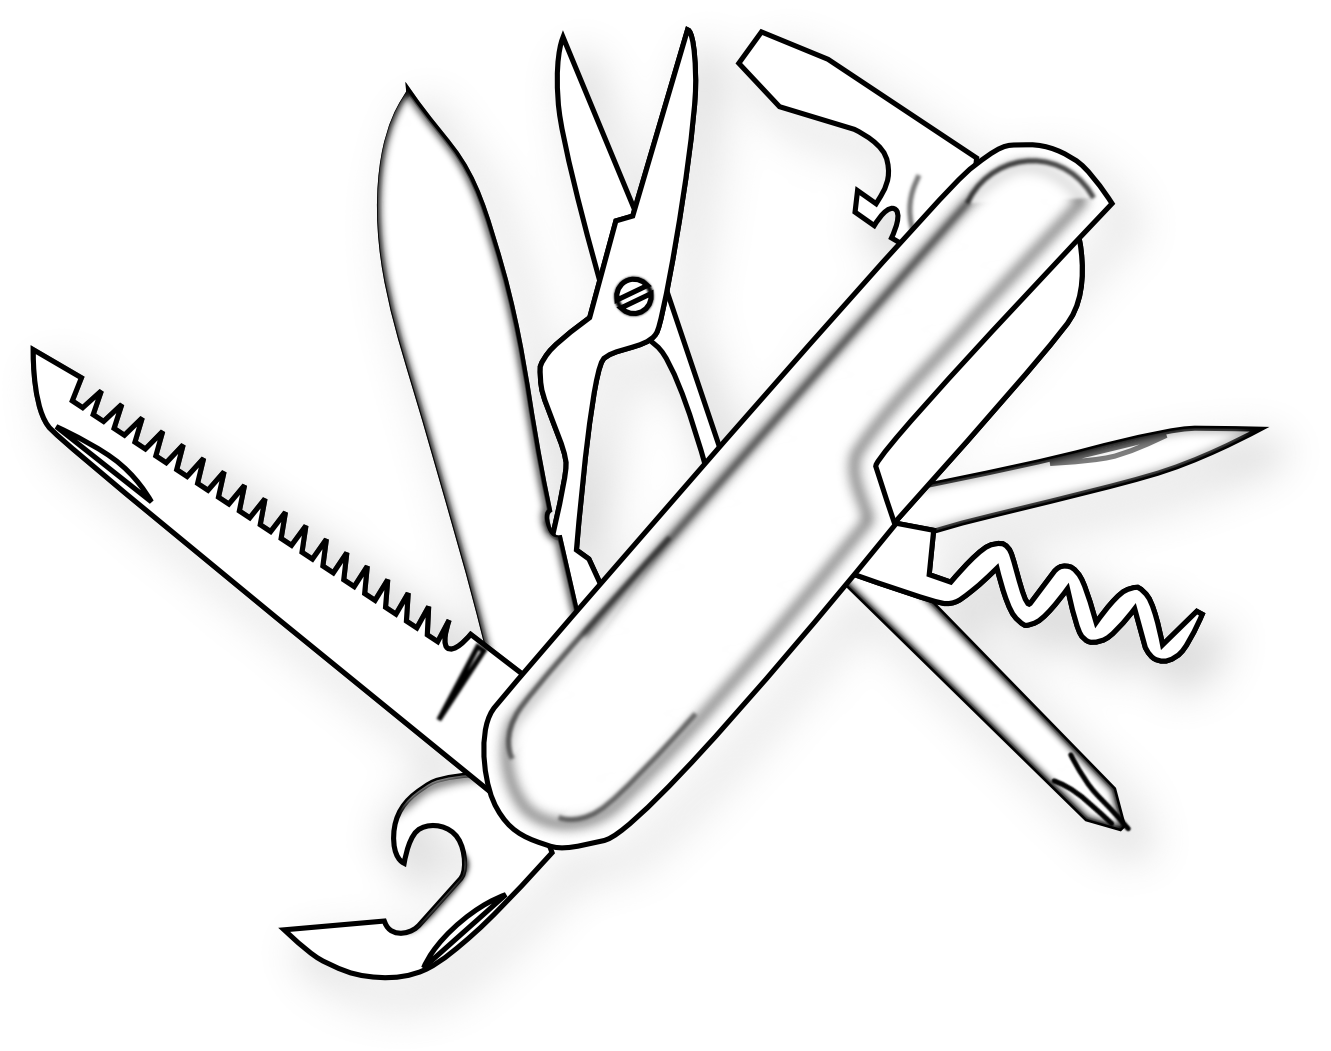 food swiss army knife 13 1233178 black white line art scalable.